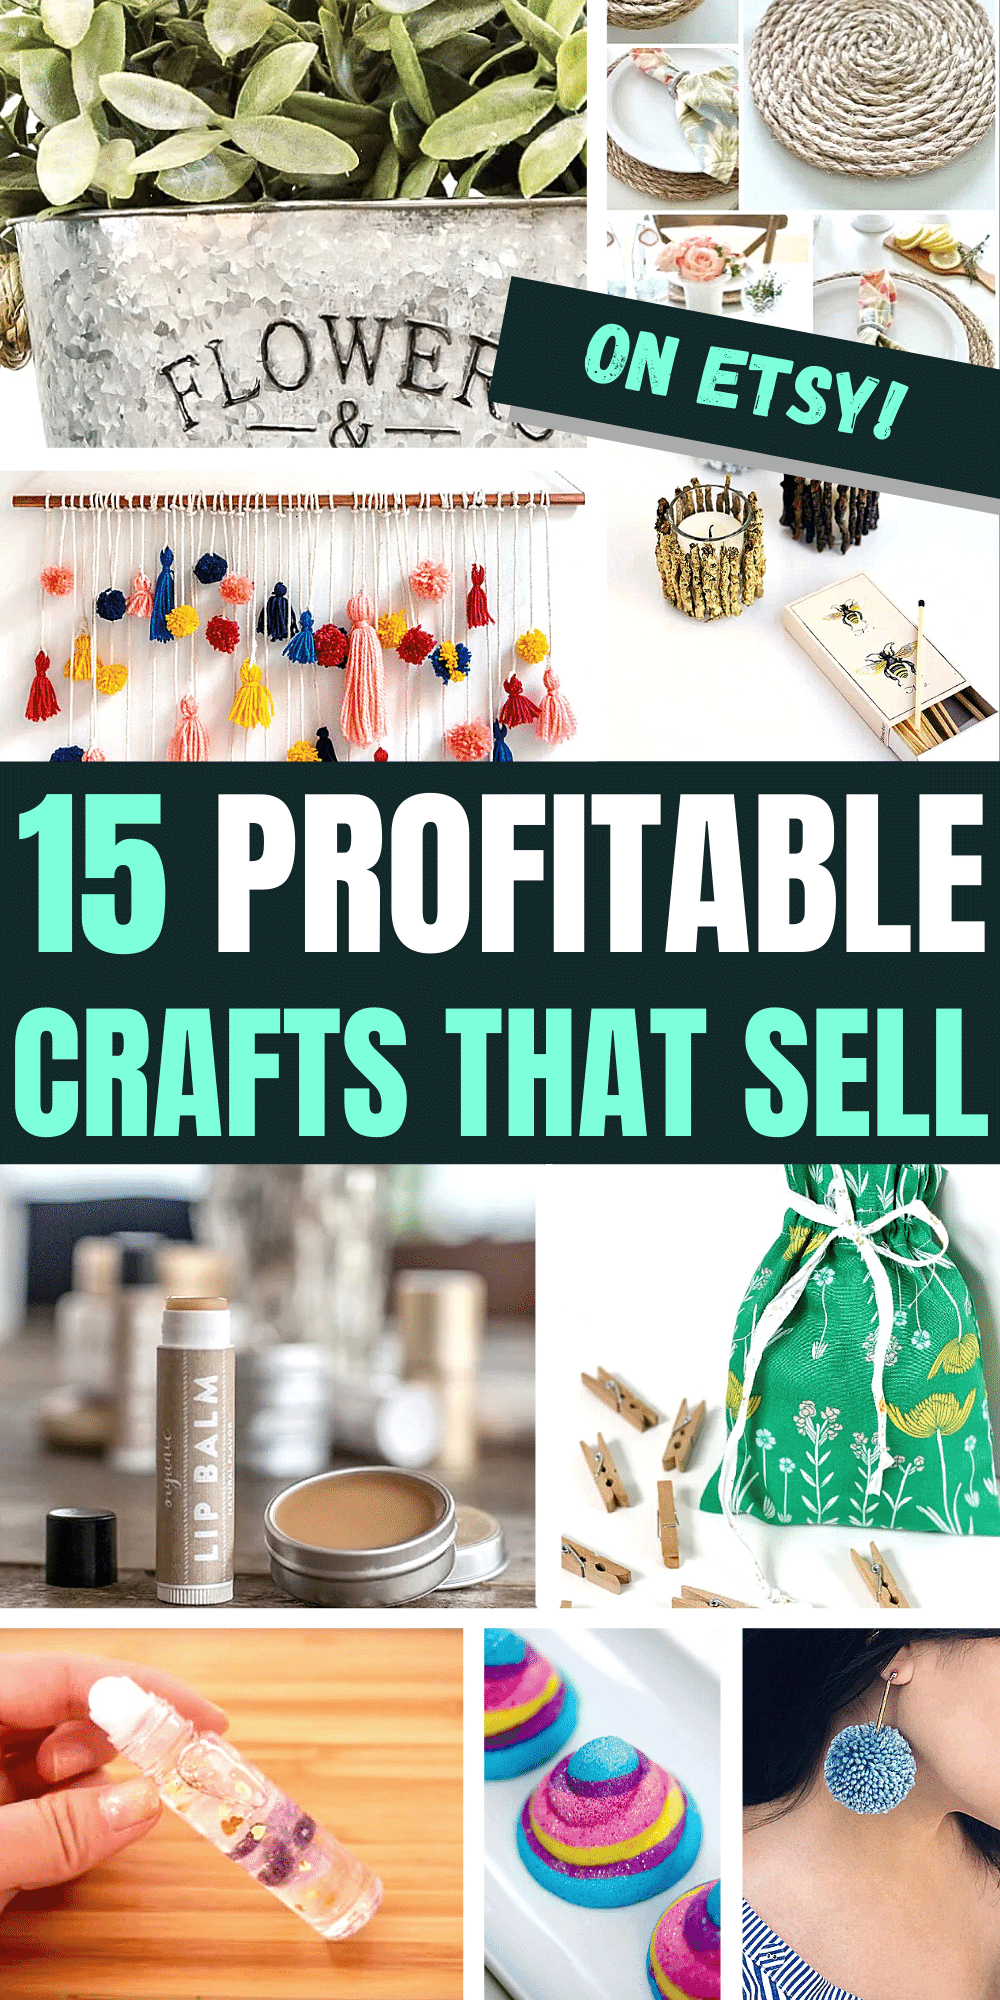 15 Profitable Crafts To Make and Sell